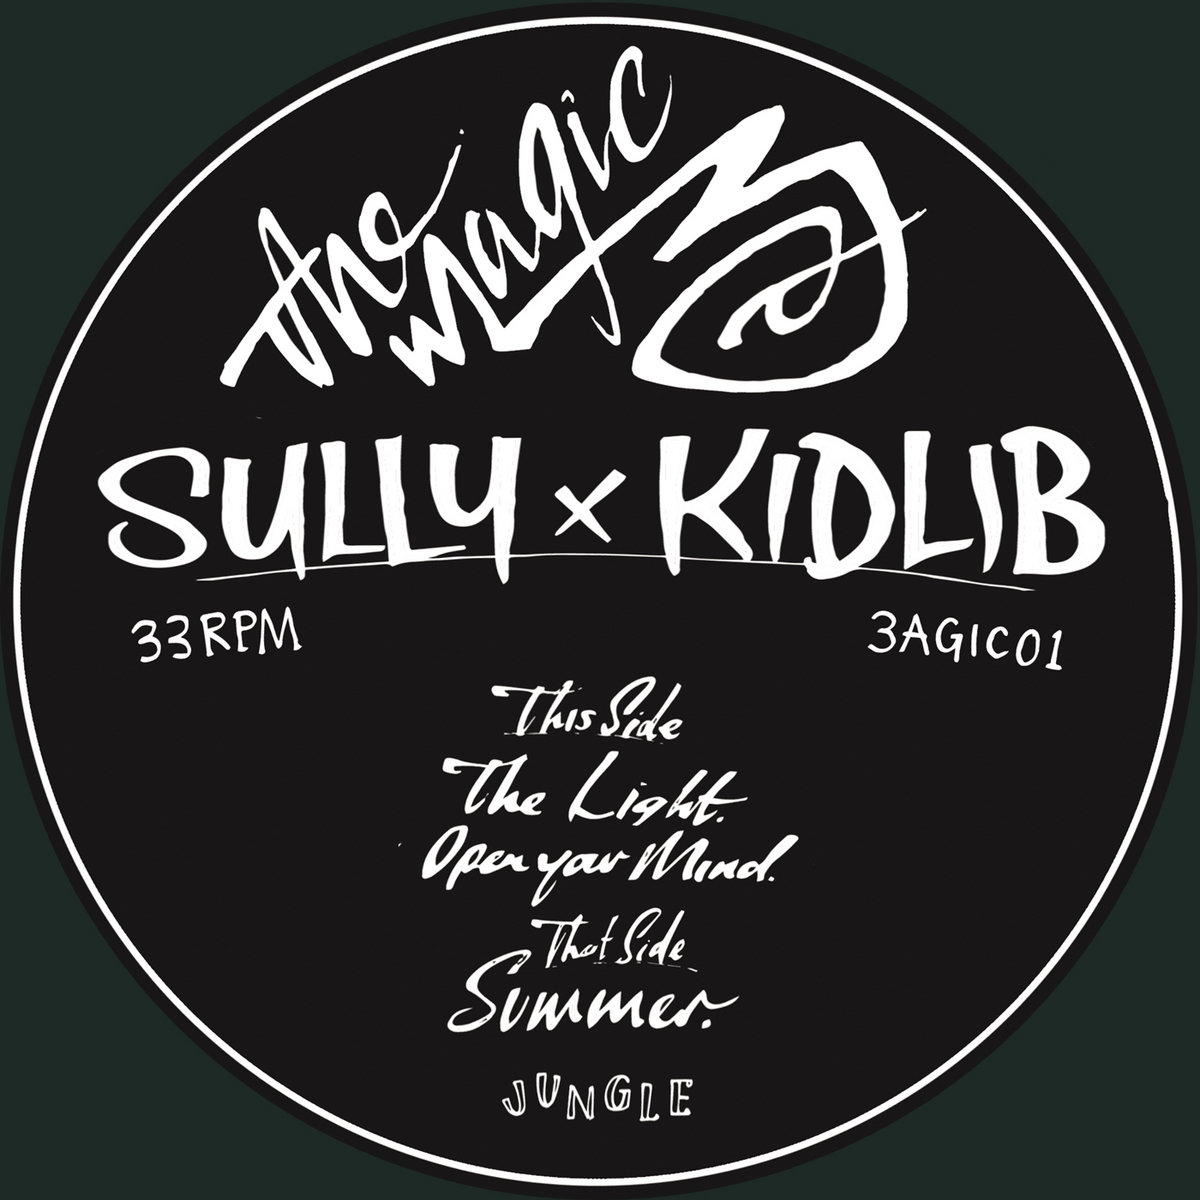 3AGIC 01 - Sully X Kid Lib (12